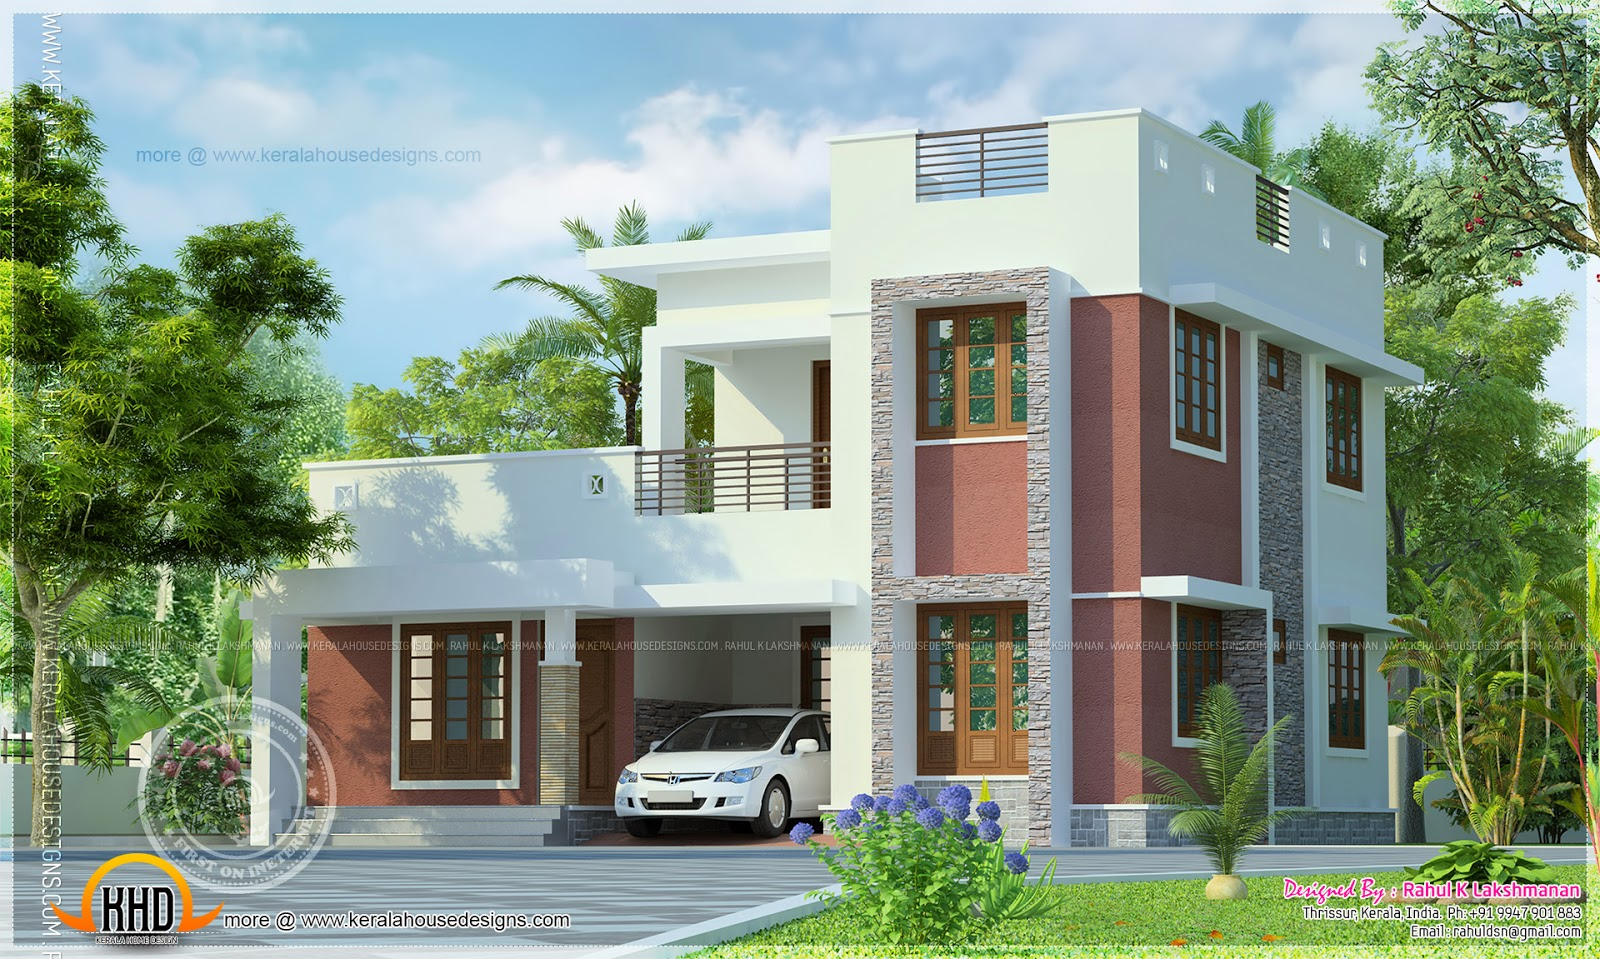 Simple flat roof house exterior - Kerala home design and ...